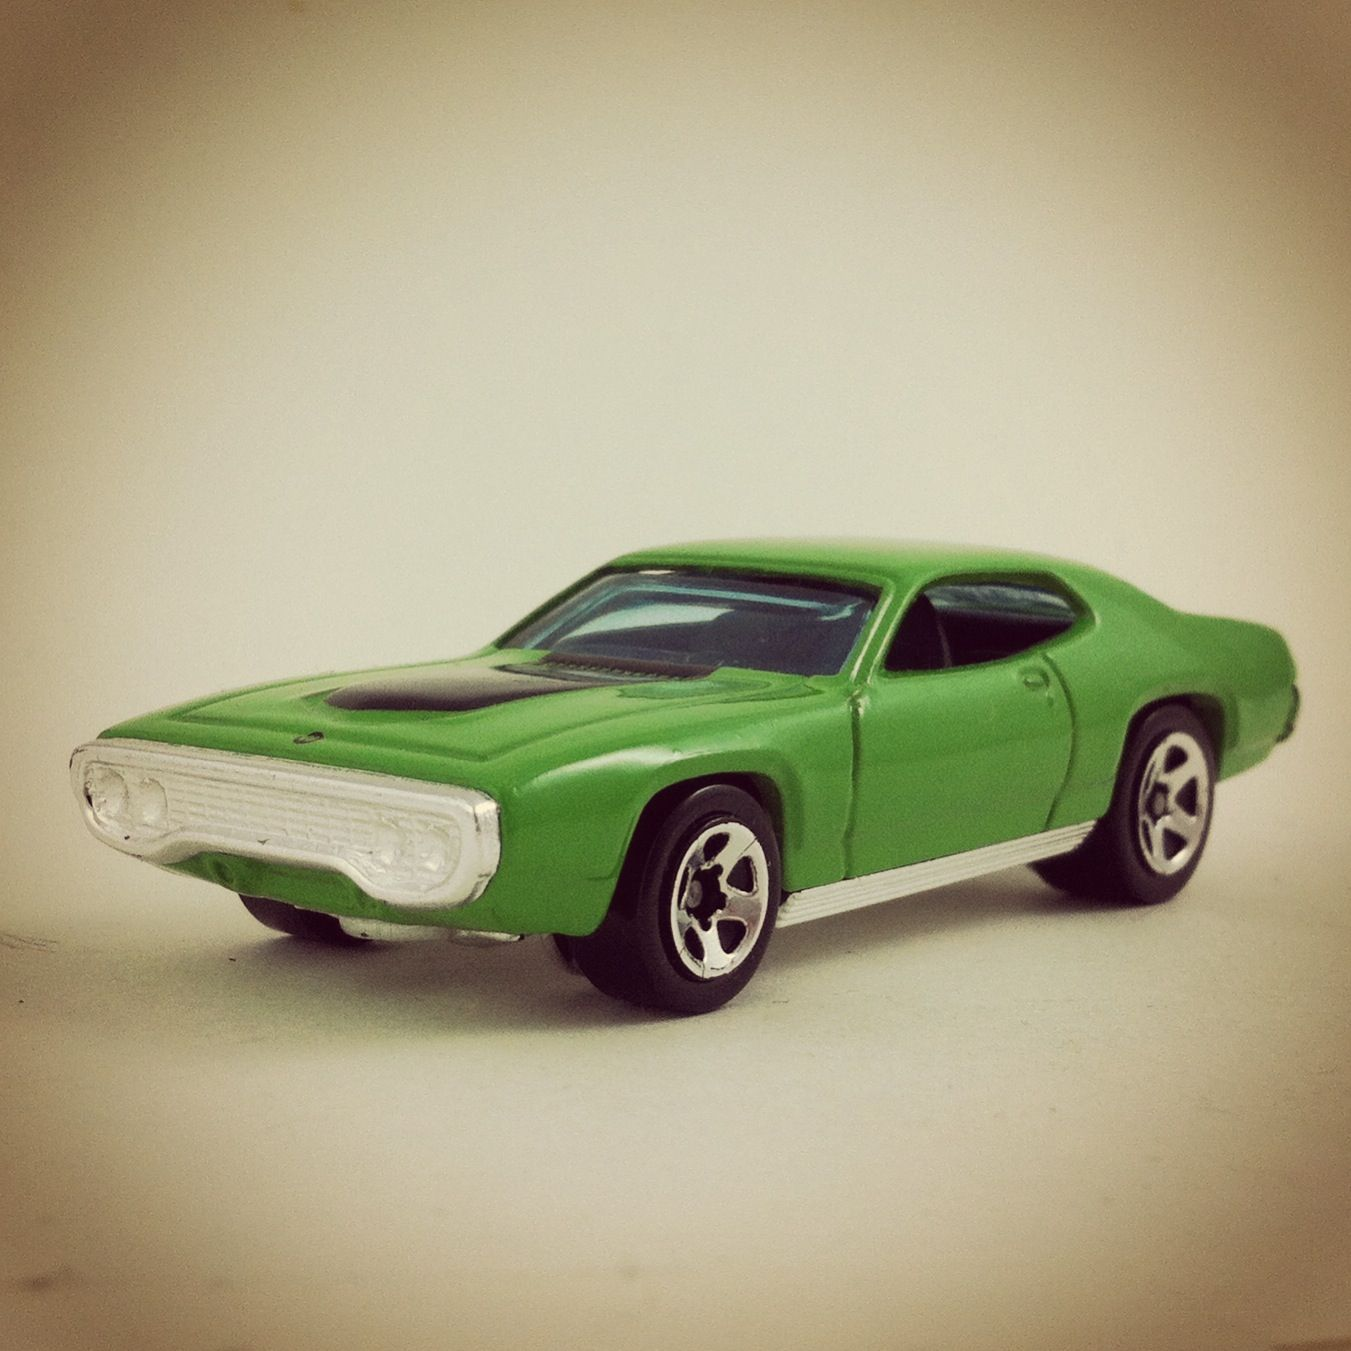 014 1971 plymouth gtx 2001 hot wheels first editions